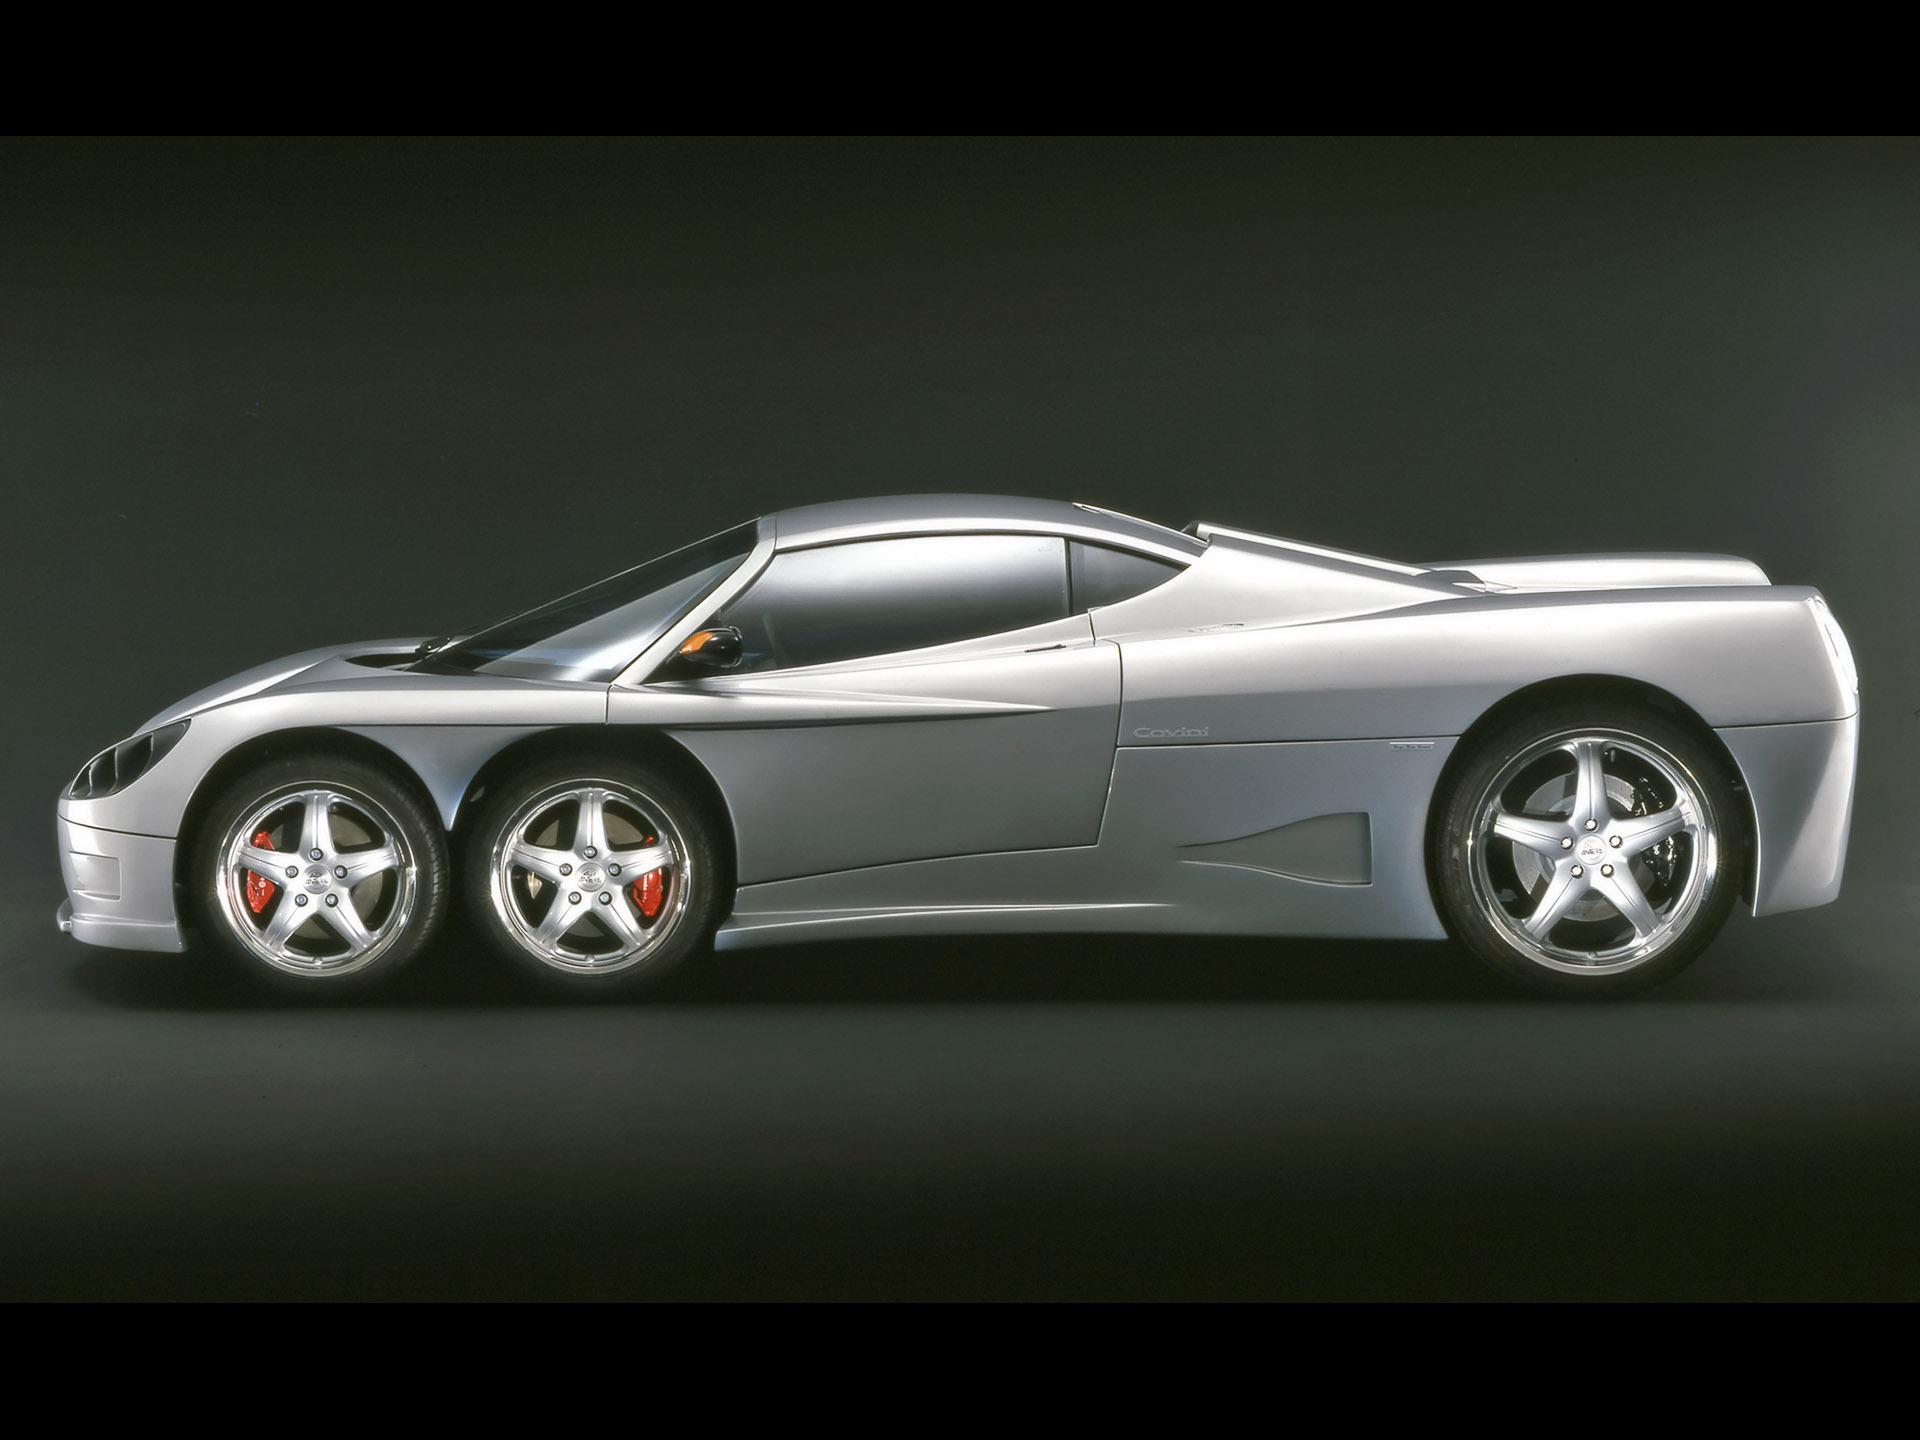 Covini C6w Side View Wallpaper Concept Cars Wallpapers In Jpg Format